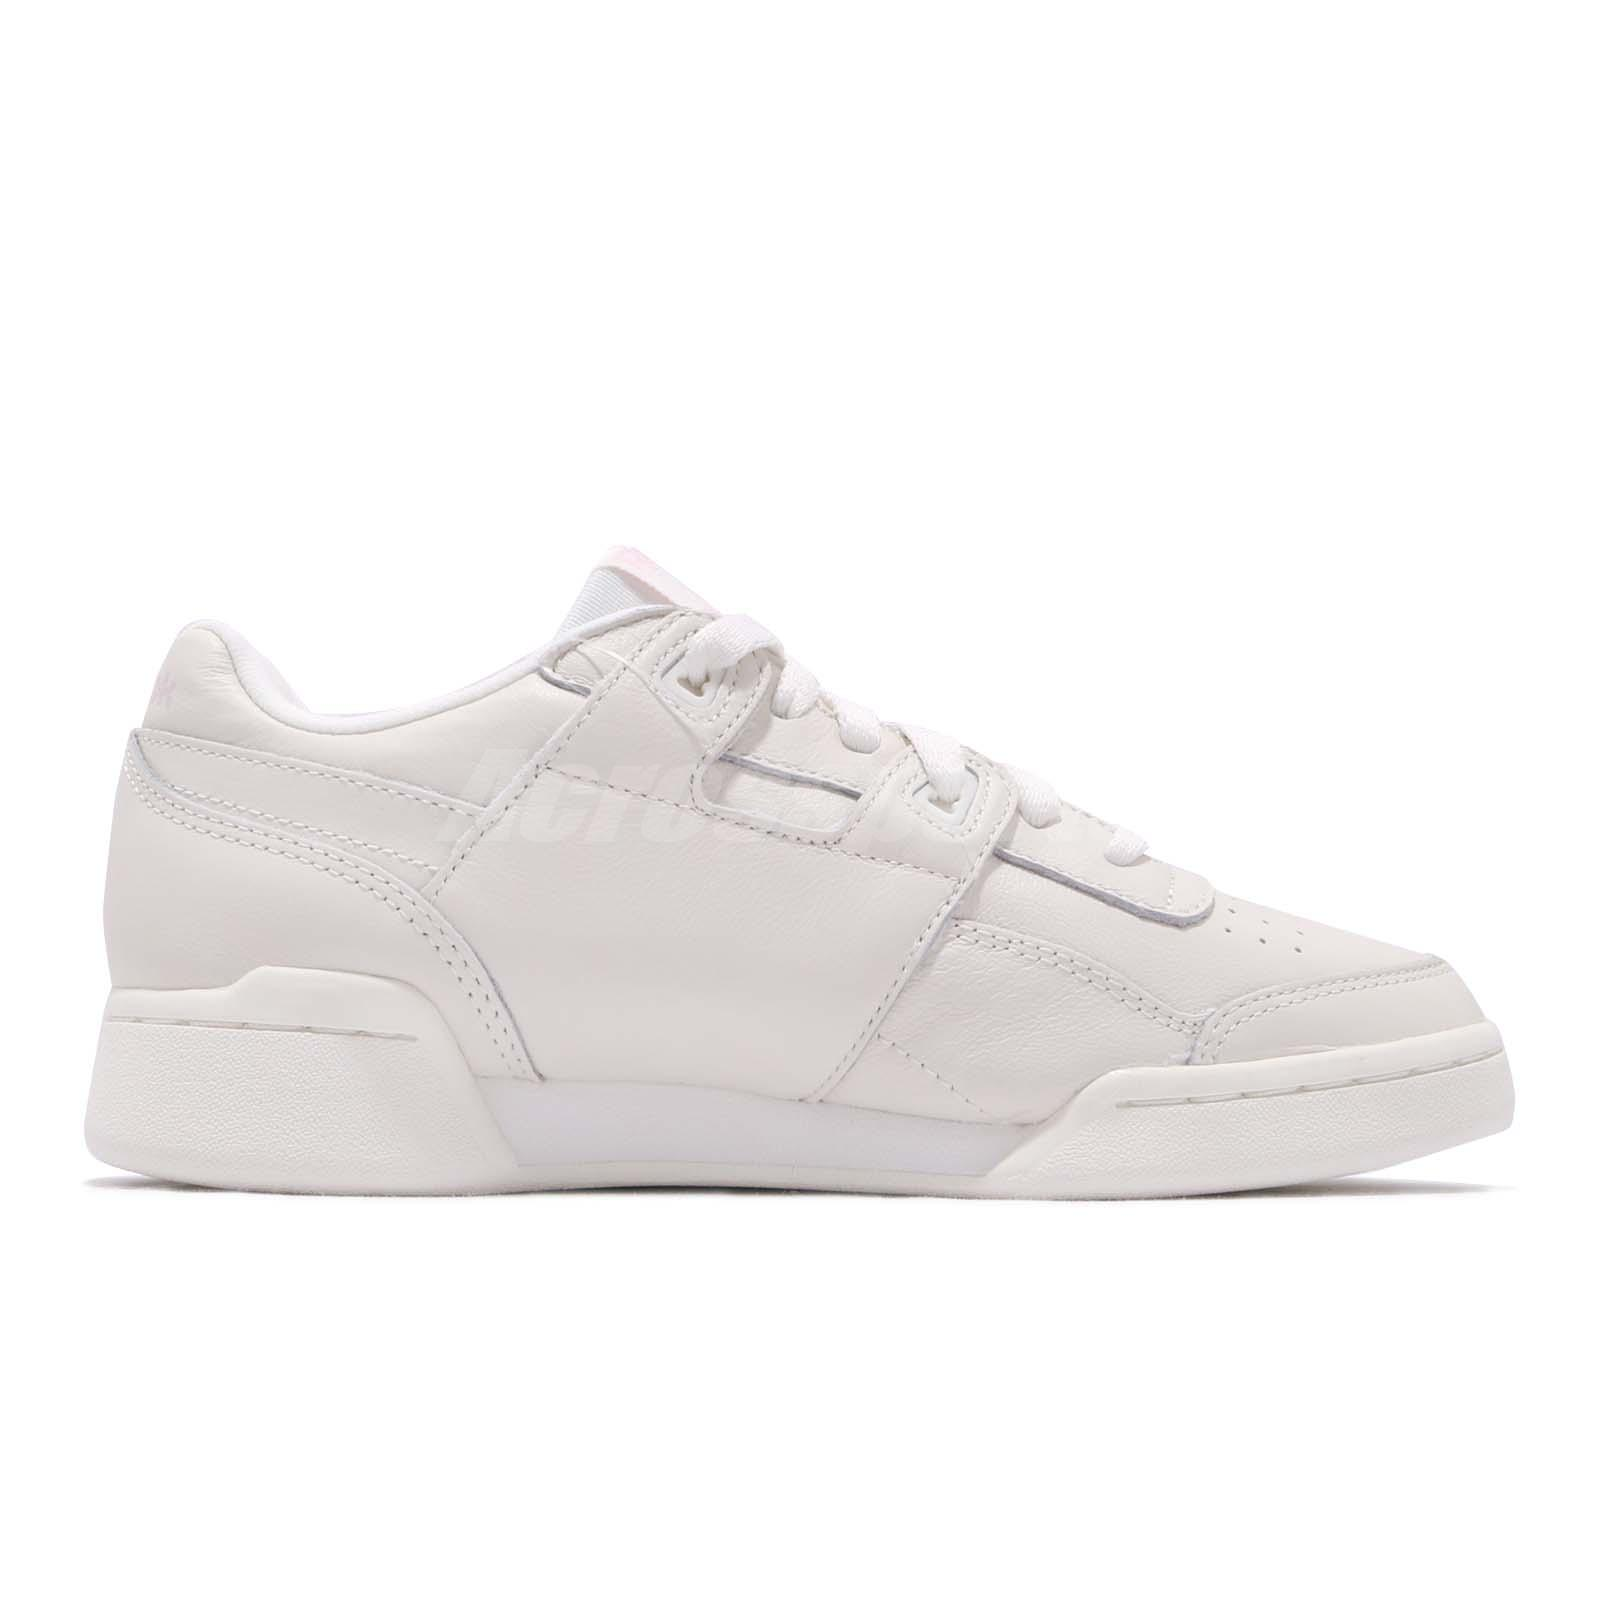 d8f1f92fdd50 Reebok Workout LO Plus White Practical Pink Women Casual Shoes ...